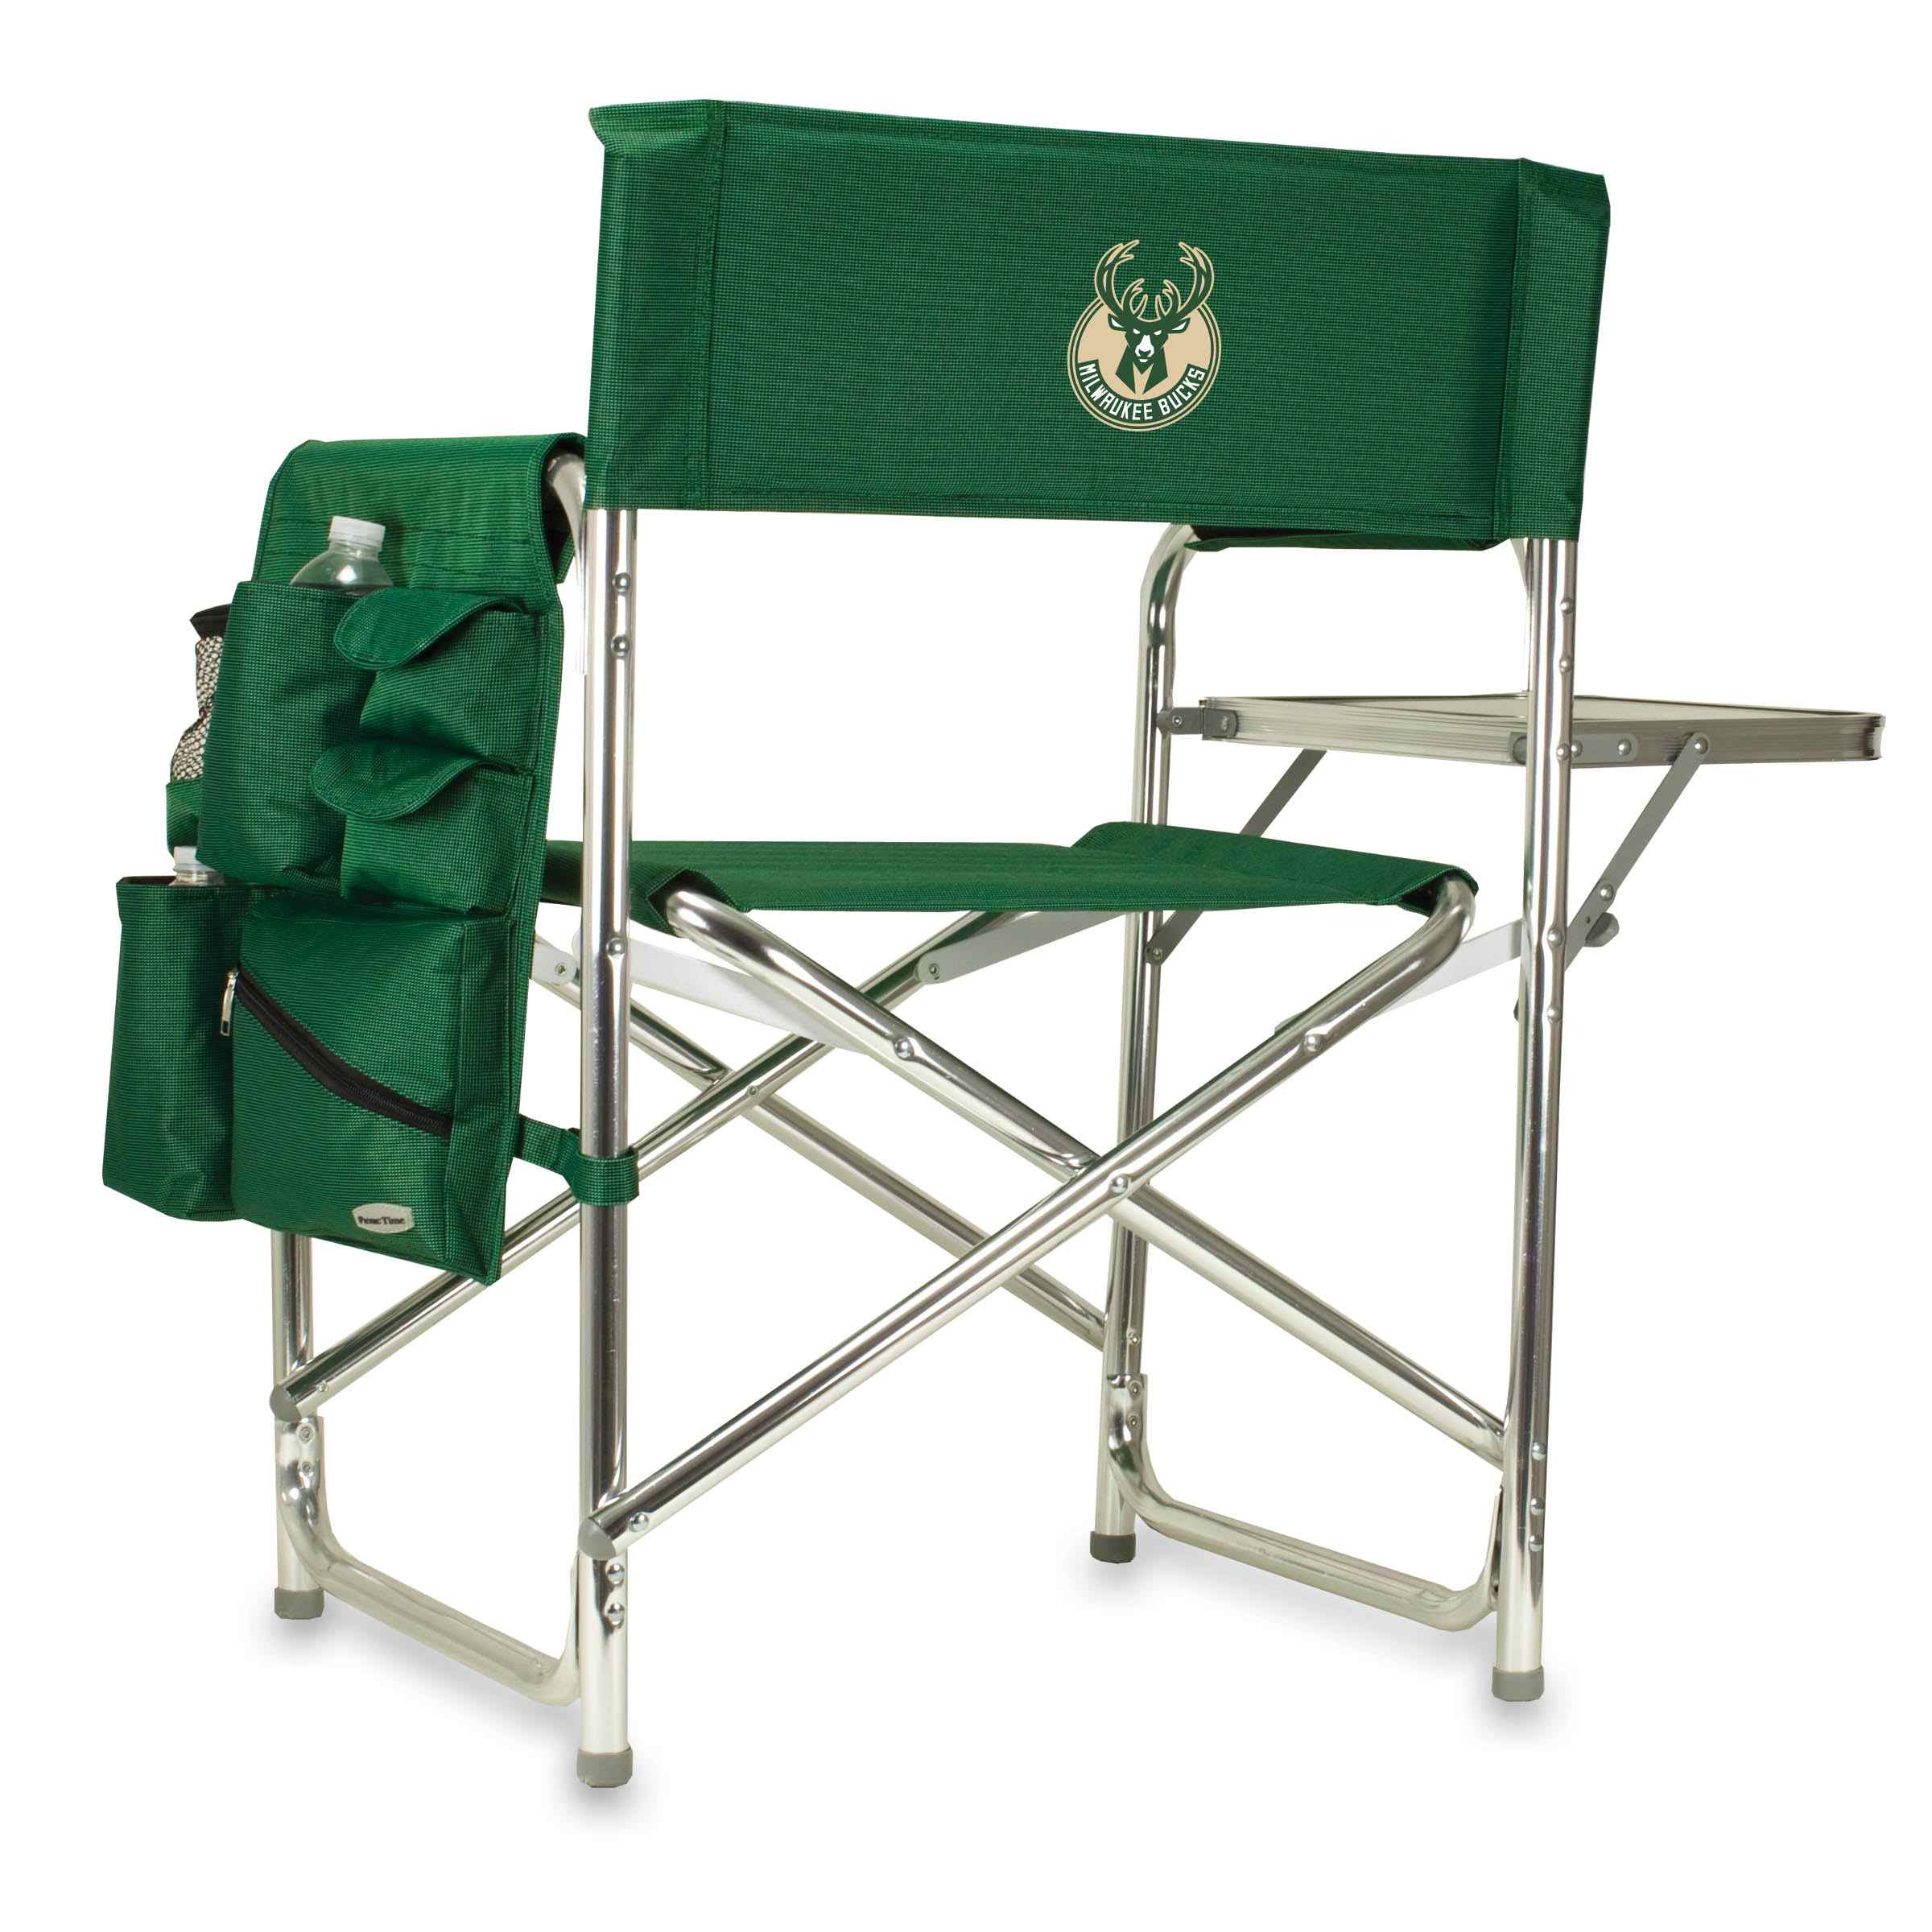 Picnic Time Nba Sports Chair Milwaukee Bucks